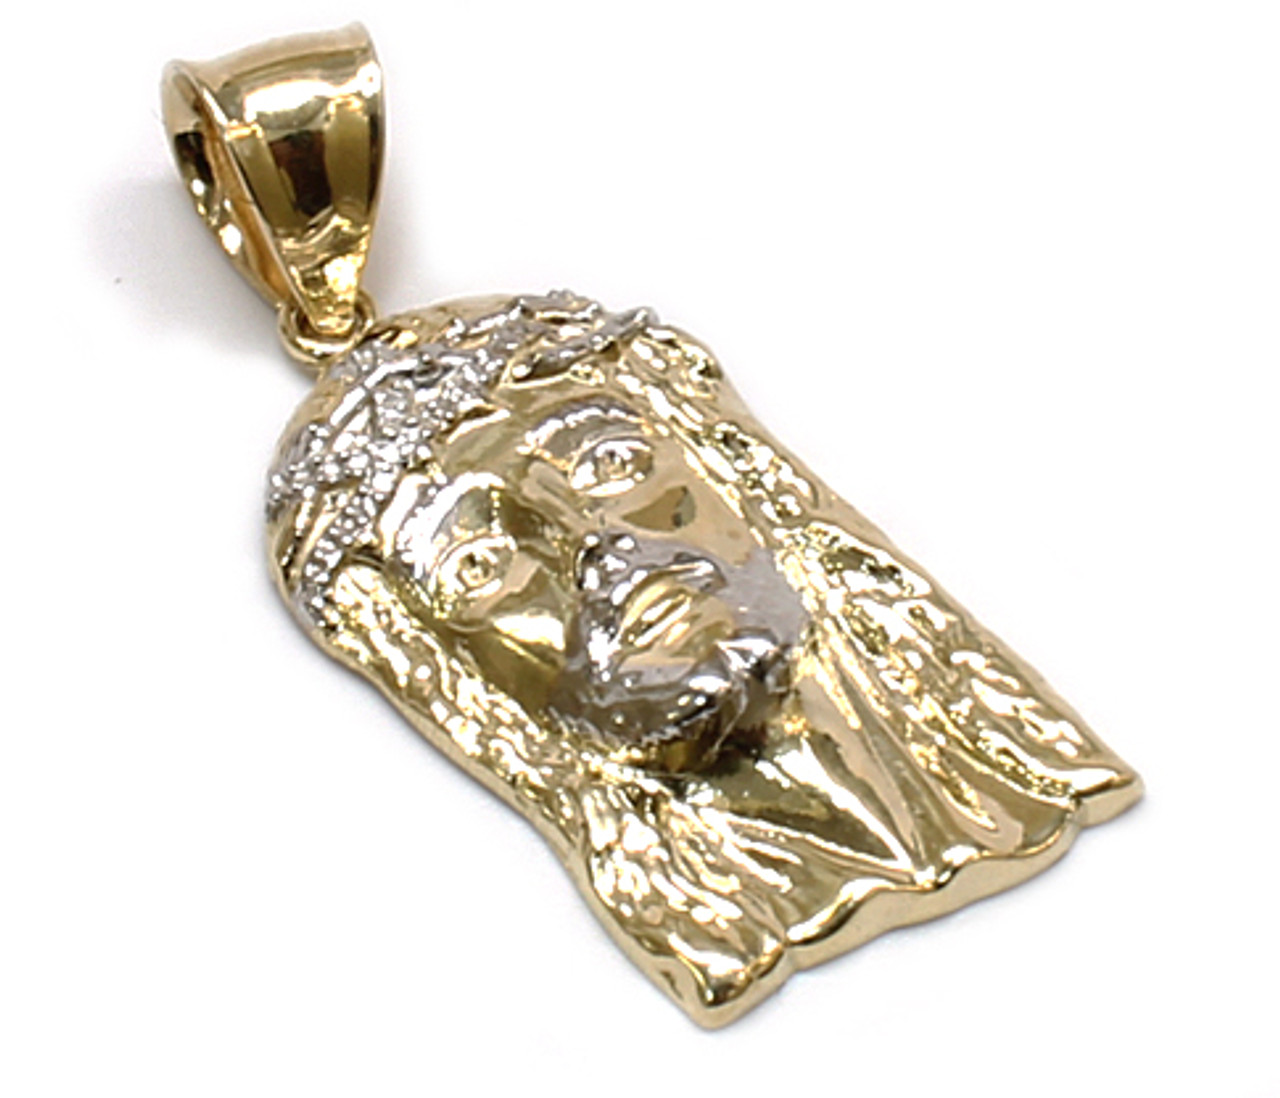 10k gold jesus piece with diamond cuts js066 king johnny 10k gold jesus piece with diamond cuts js066 aloadofball Image collections